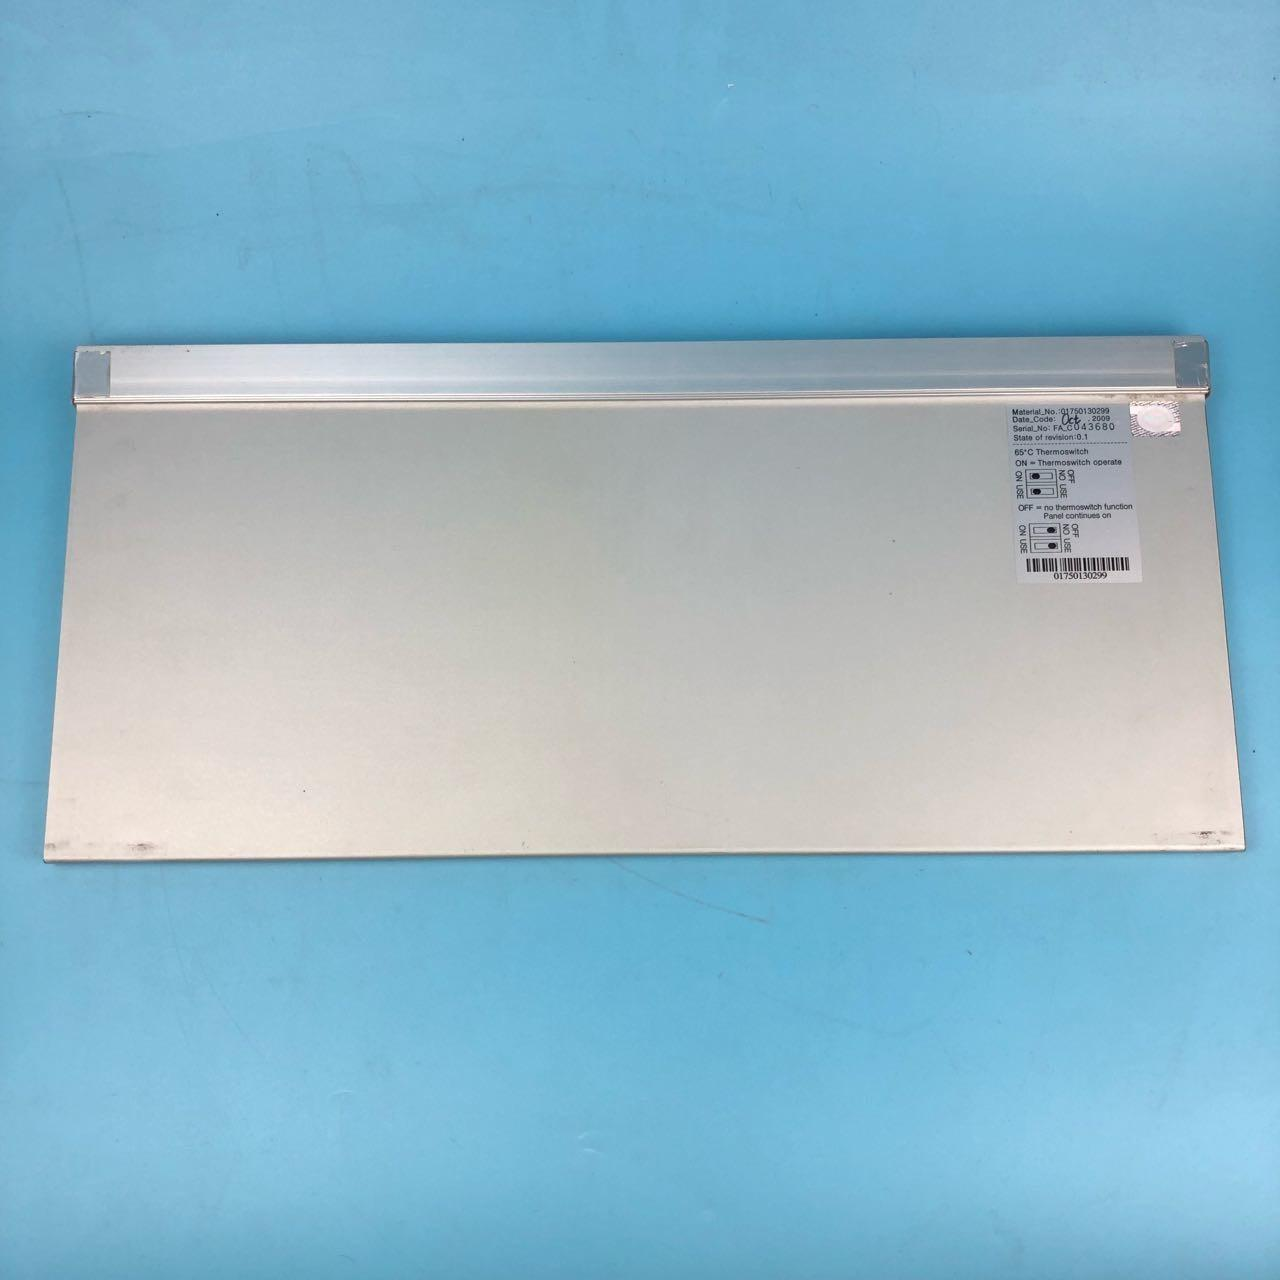 Buy cheap Light Panel 1750130299 Wincor Nixdorf ATM Parts Original New Condition Mixed Material from Wholesalers